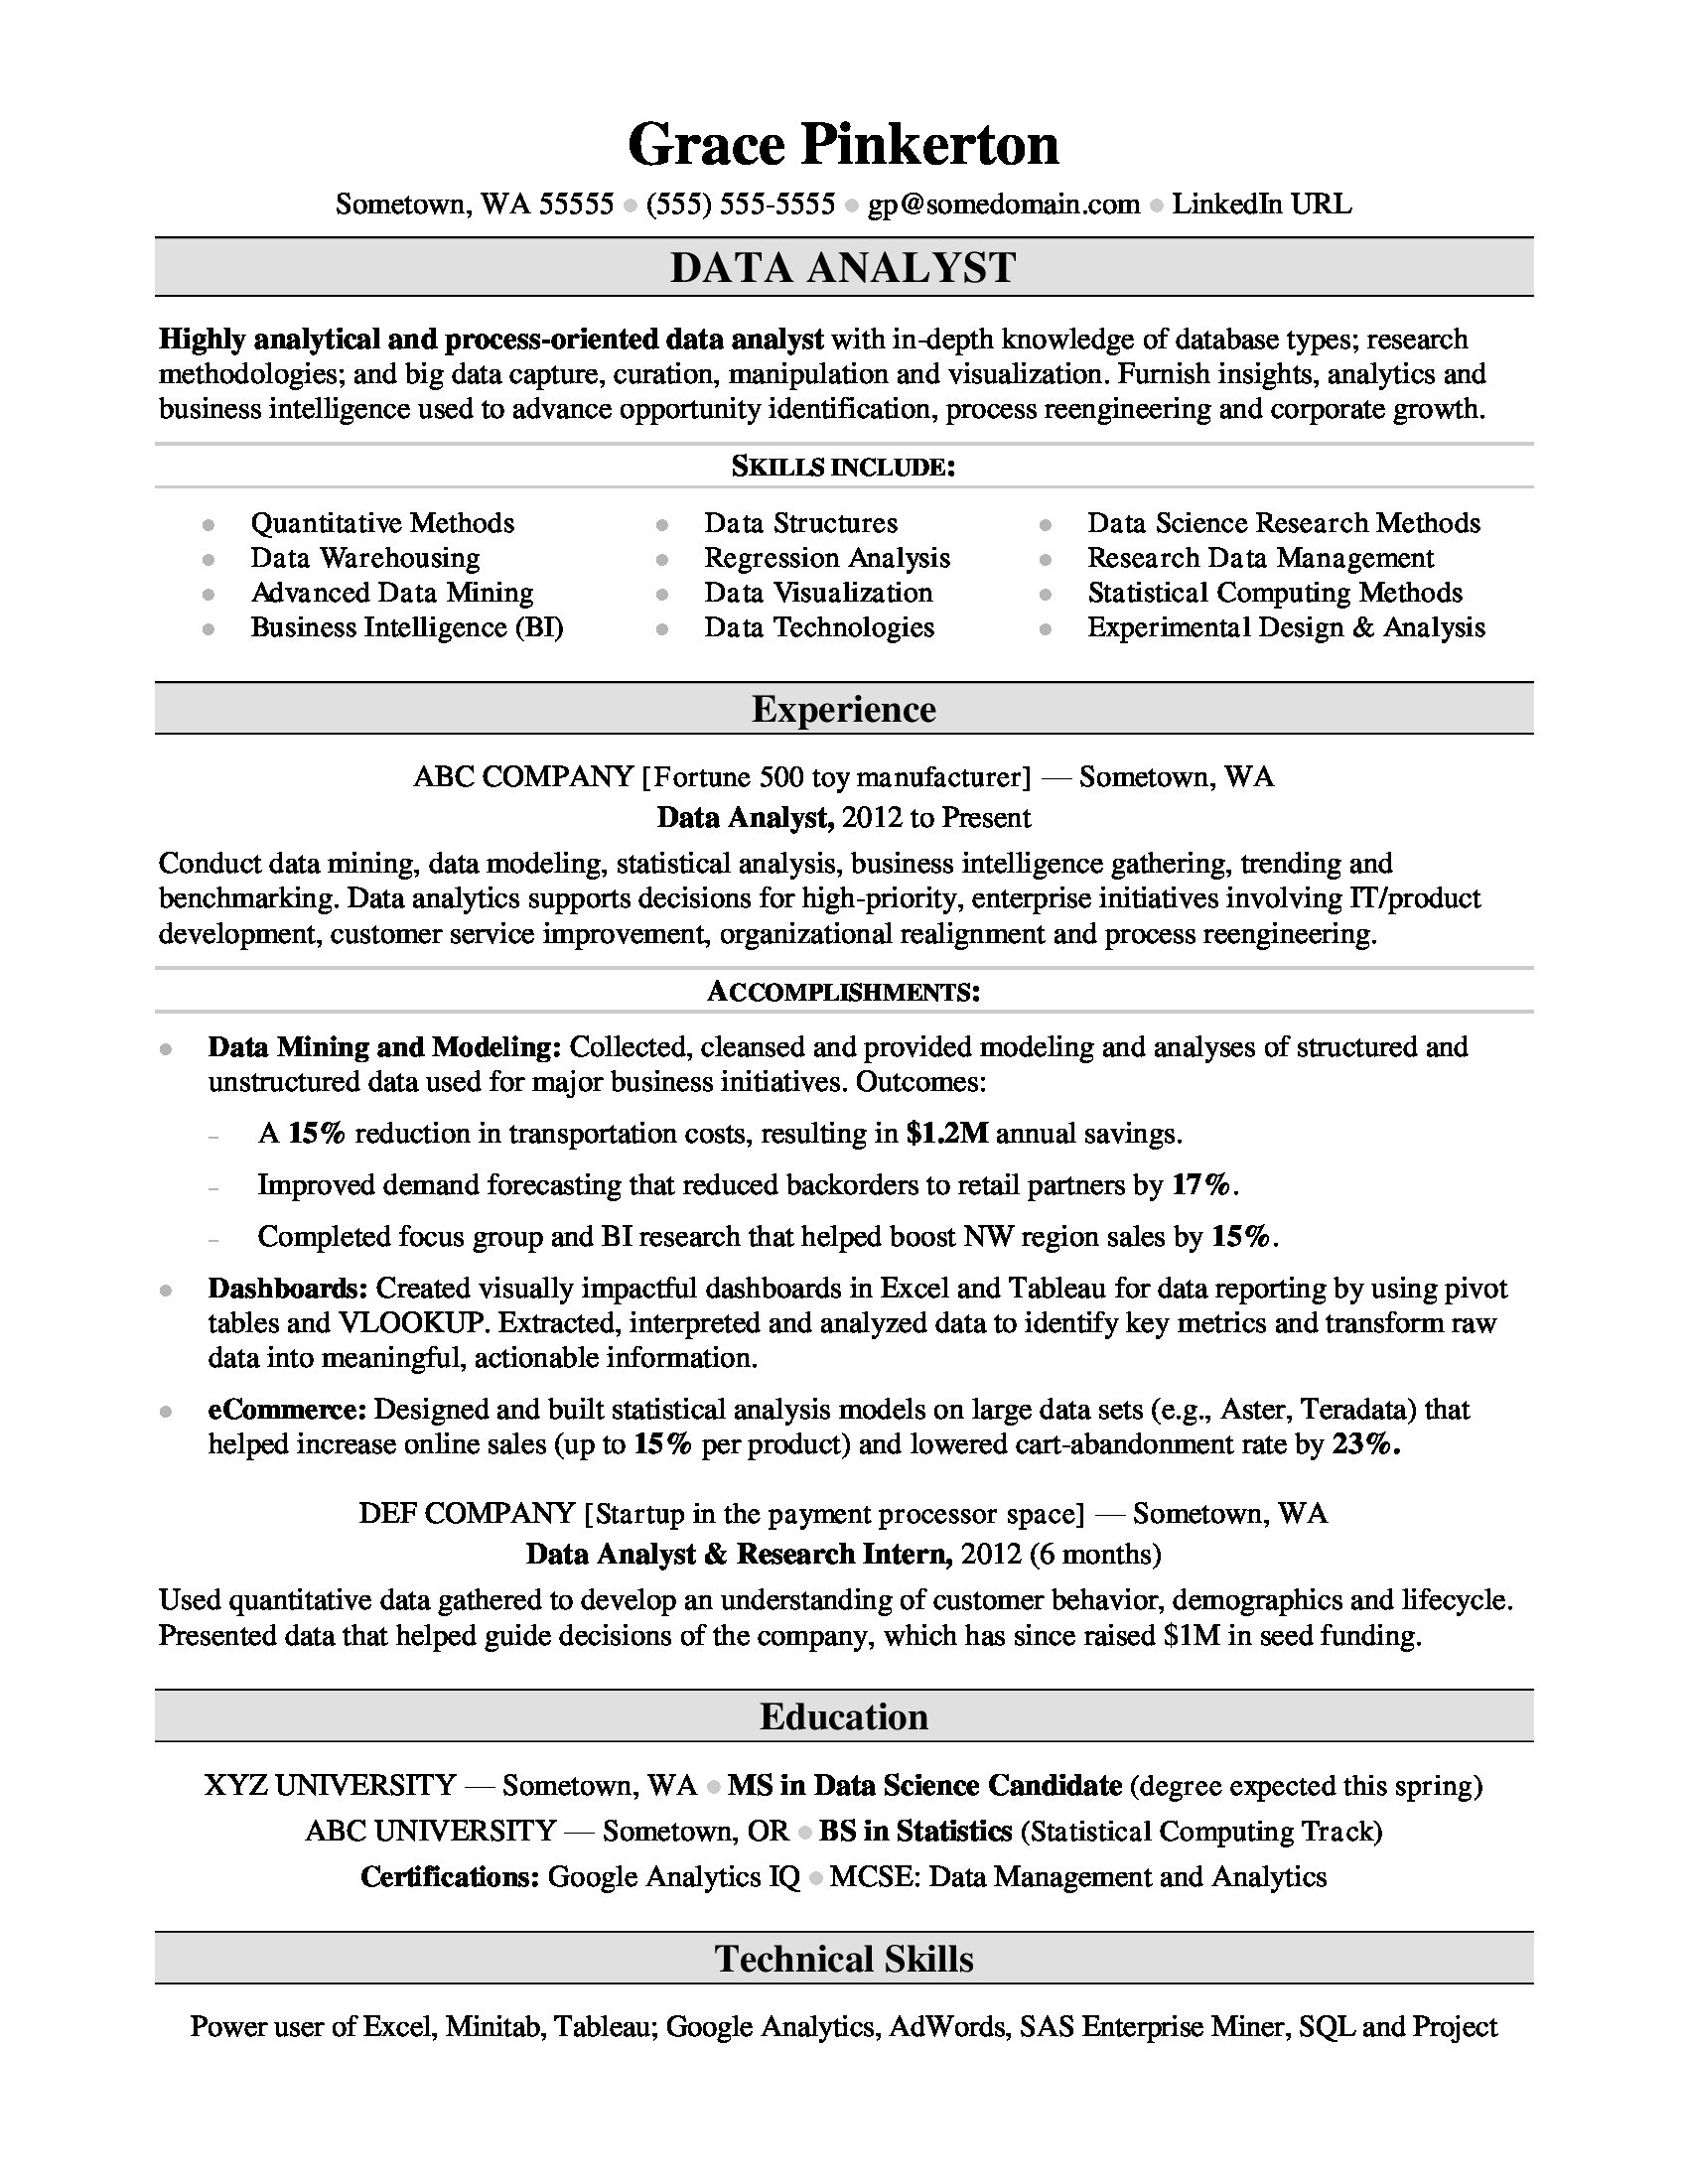 Data Analyst Resume Sample  Monster Resume Examples